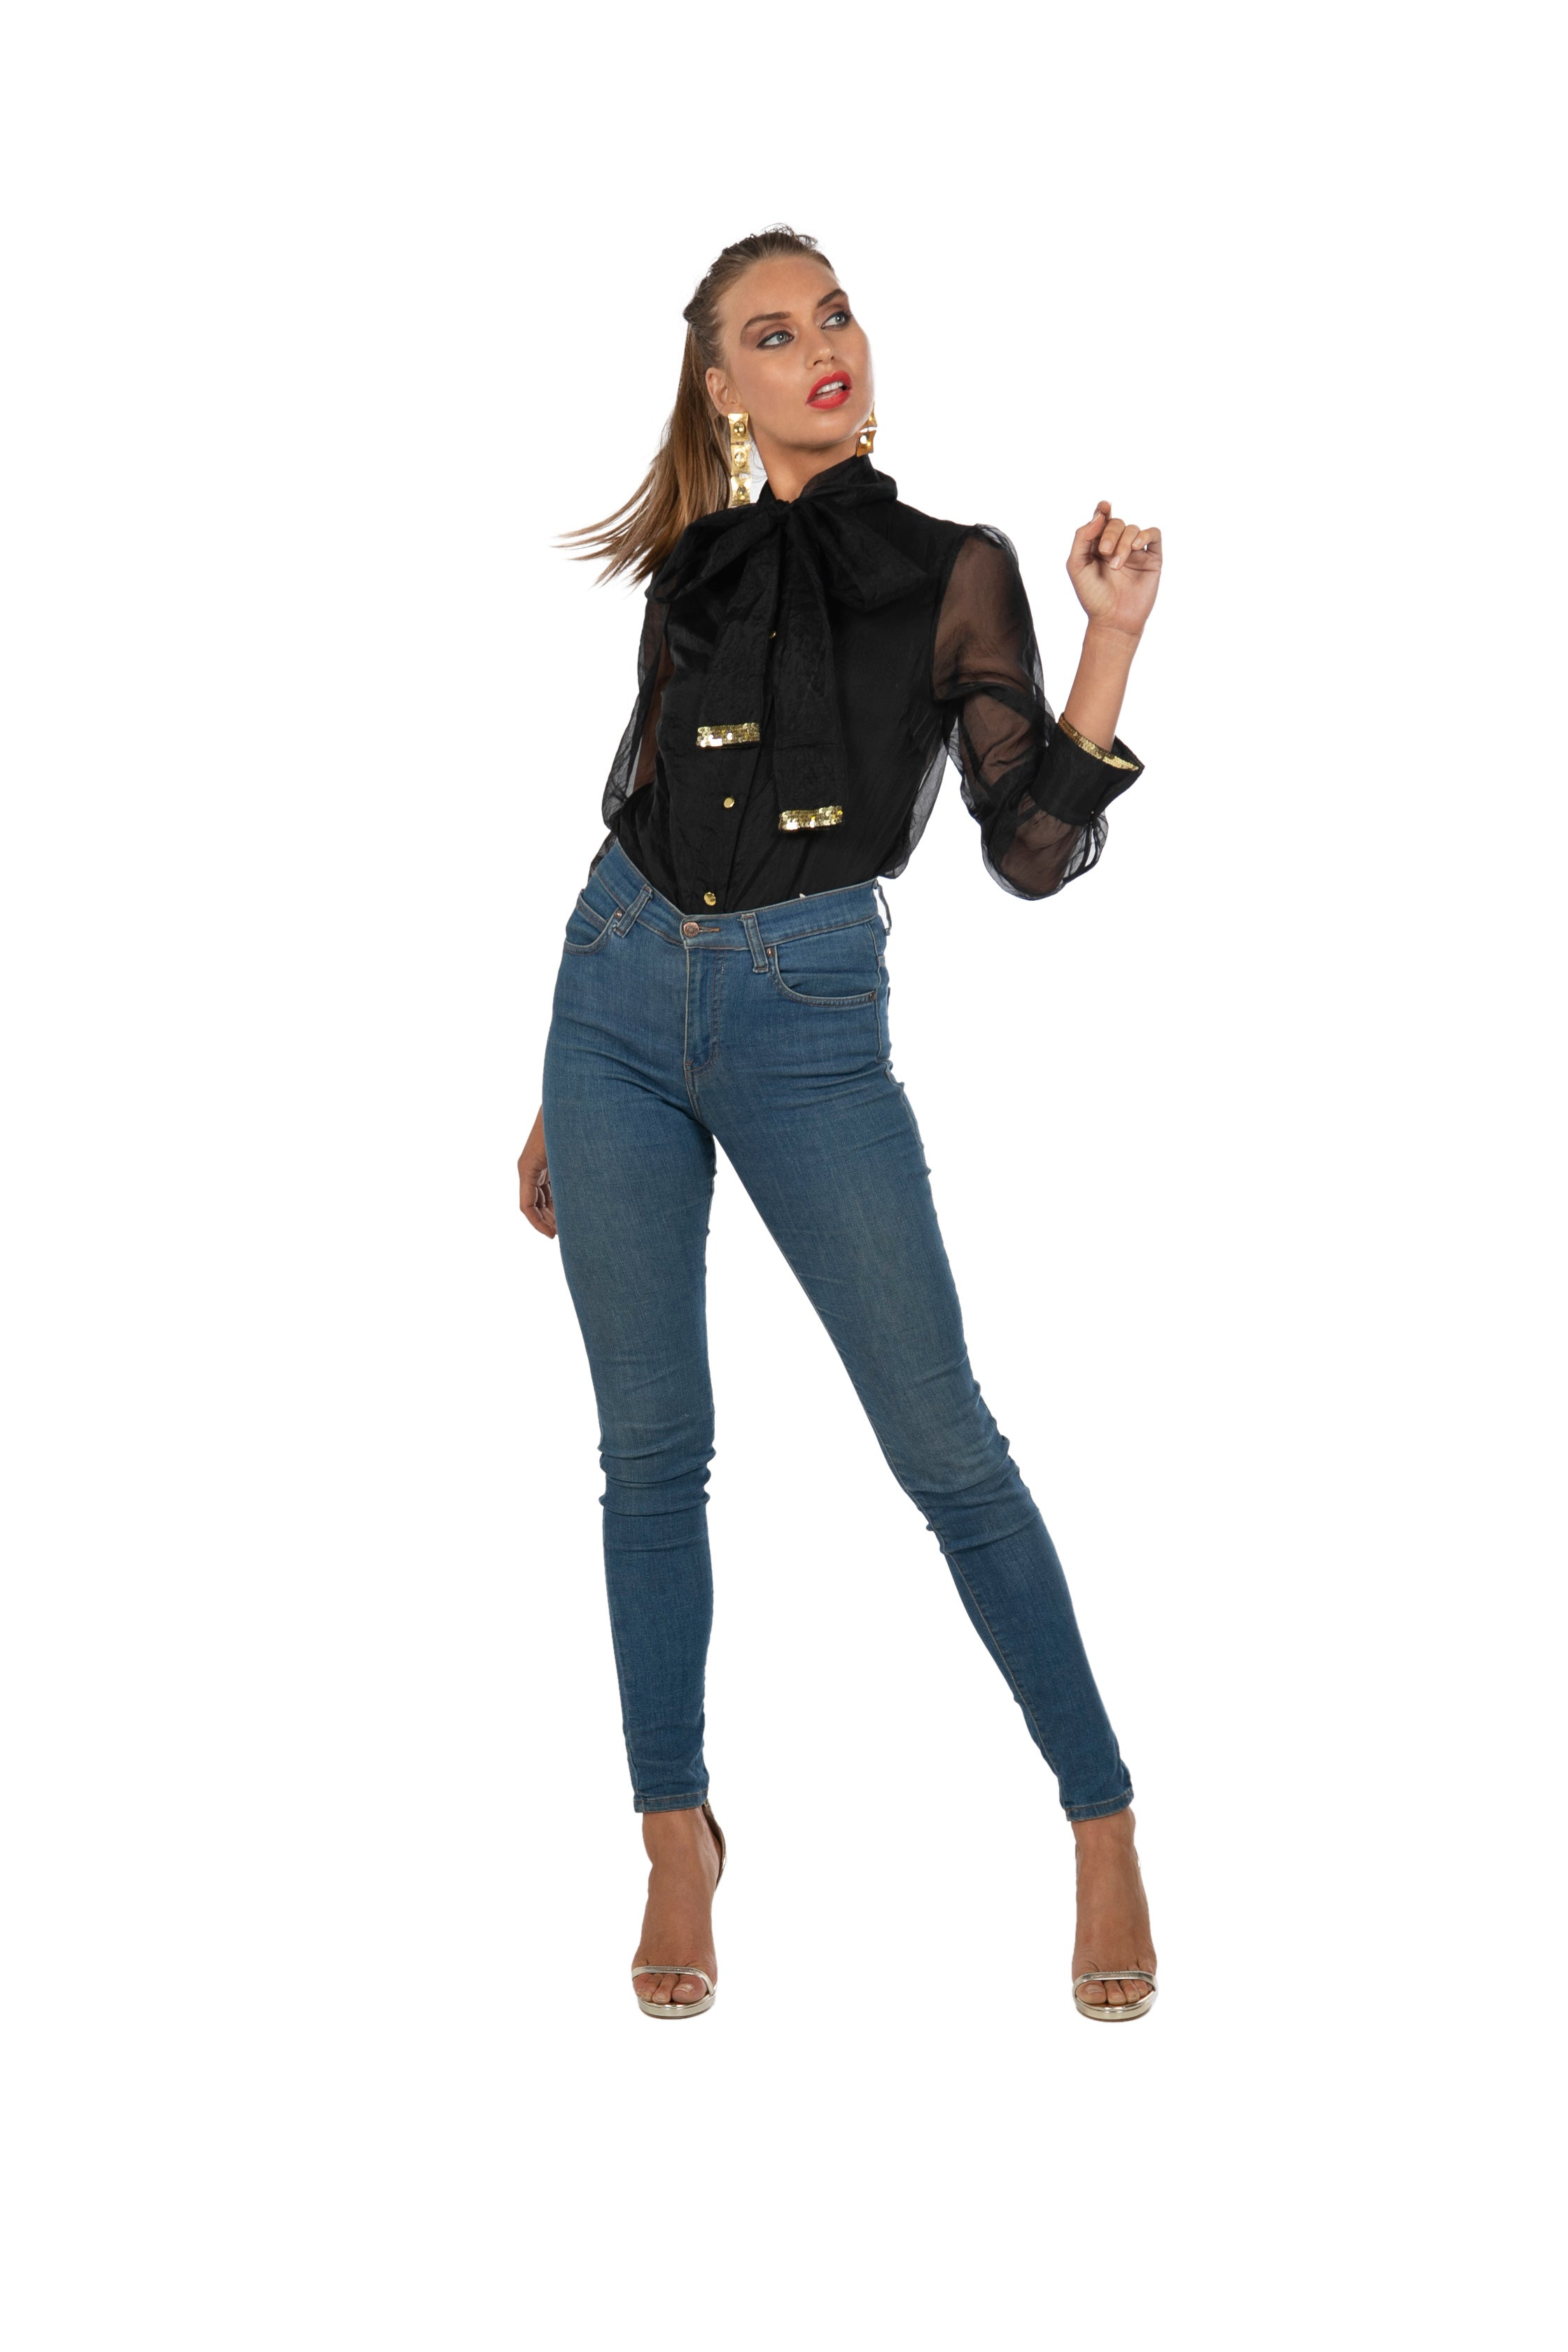 The Black Bow Blouse by Bonita Collective